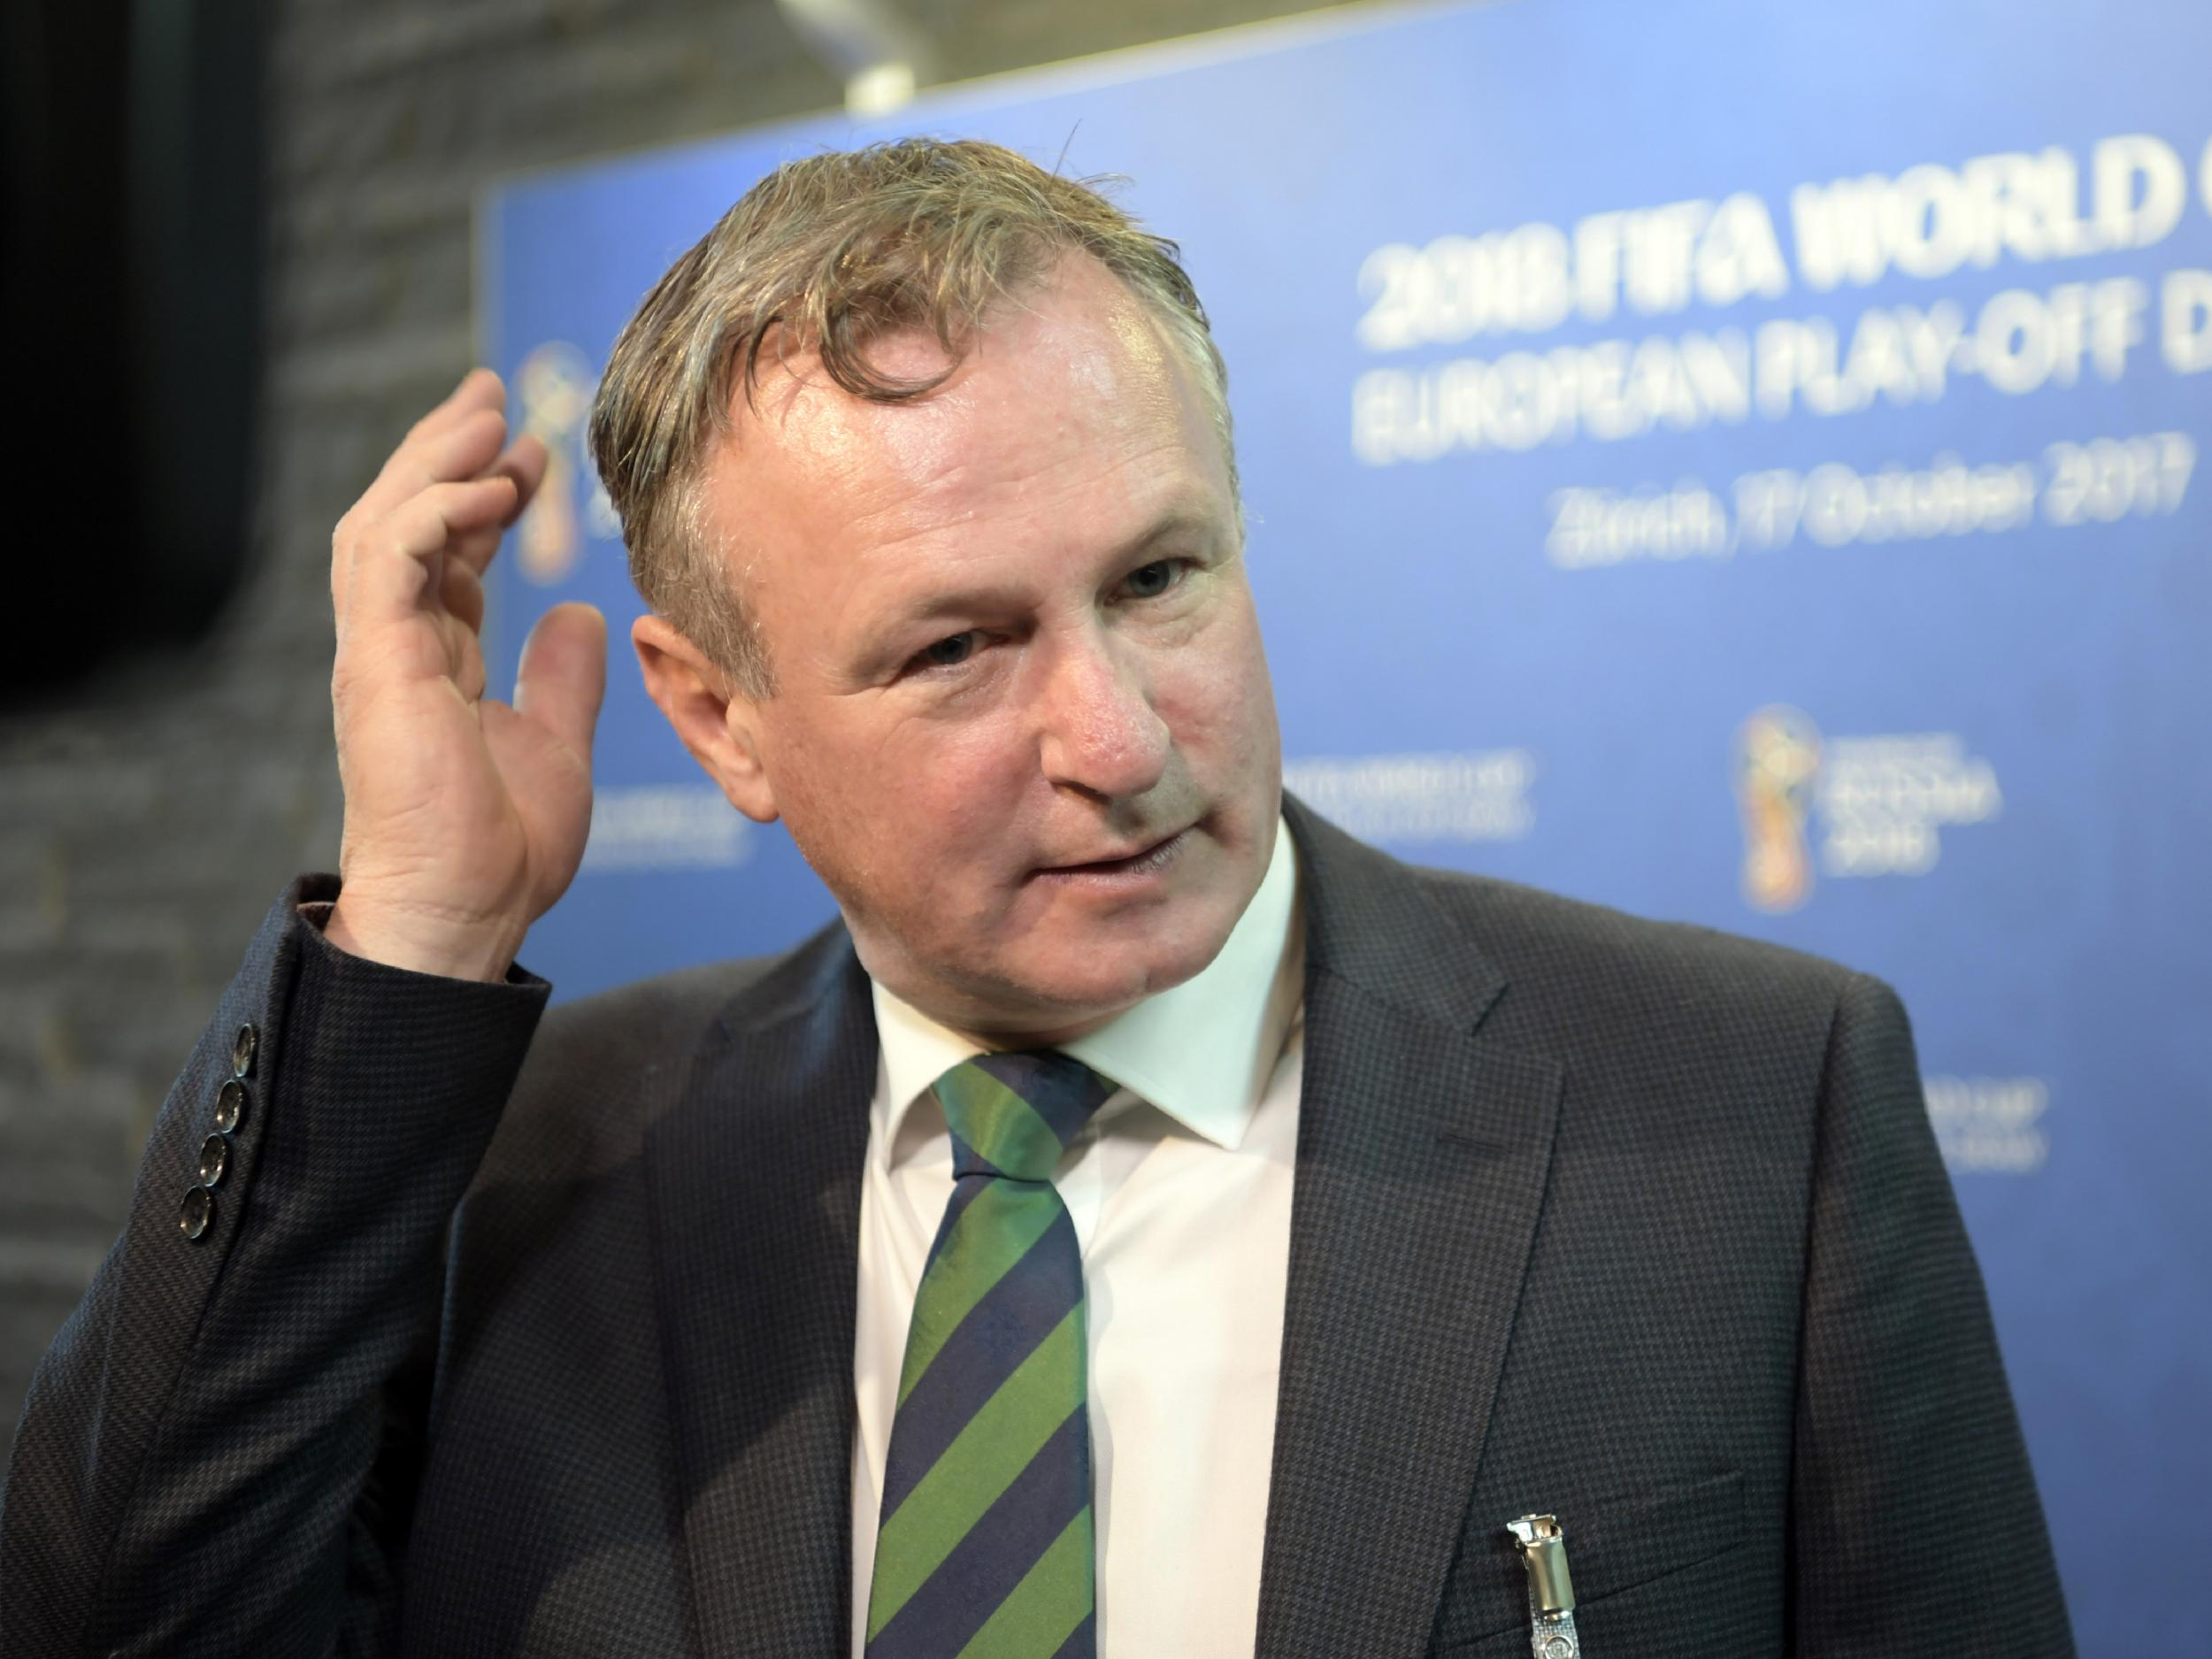 Northern Ireland manager Michael O'Neill pleads guilty to drink-driving and receives 16 month ban